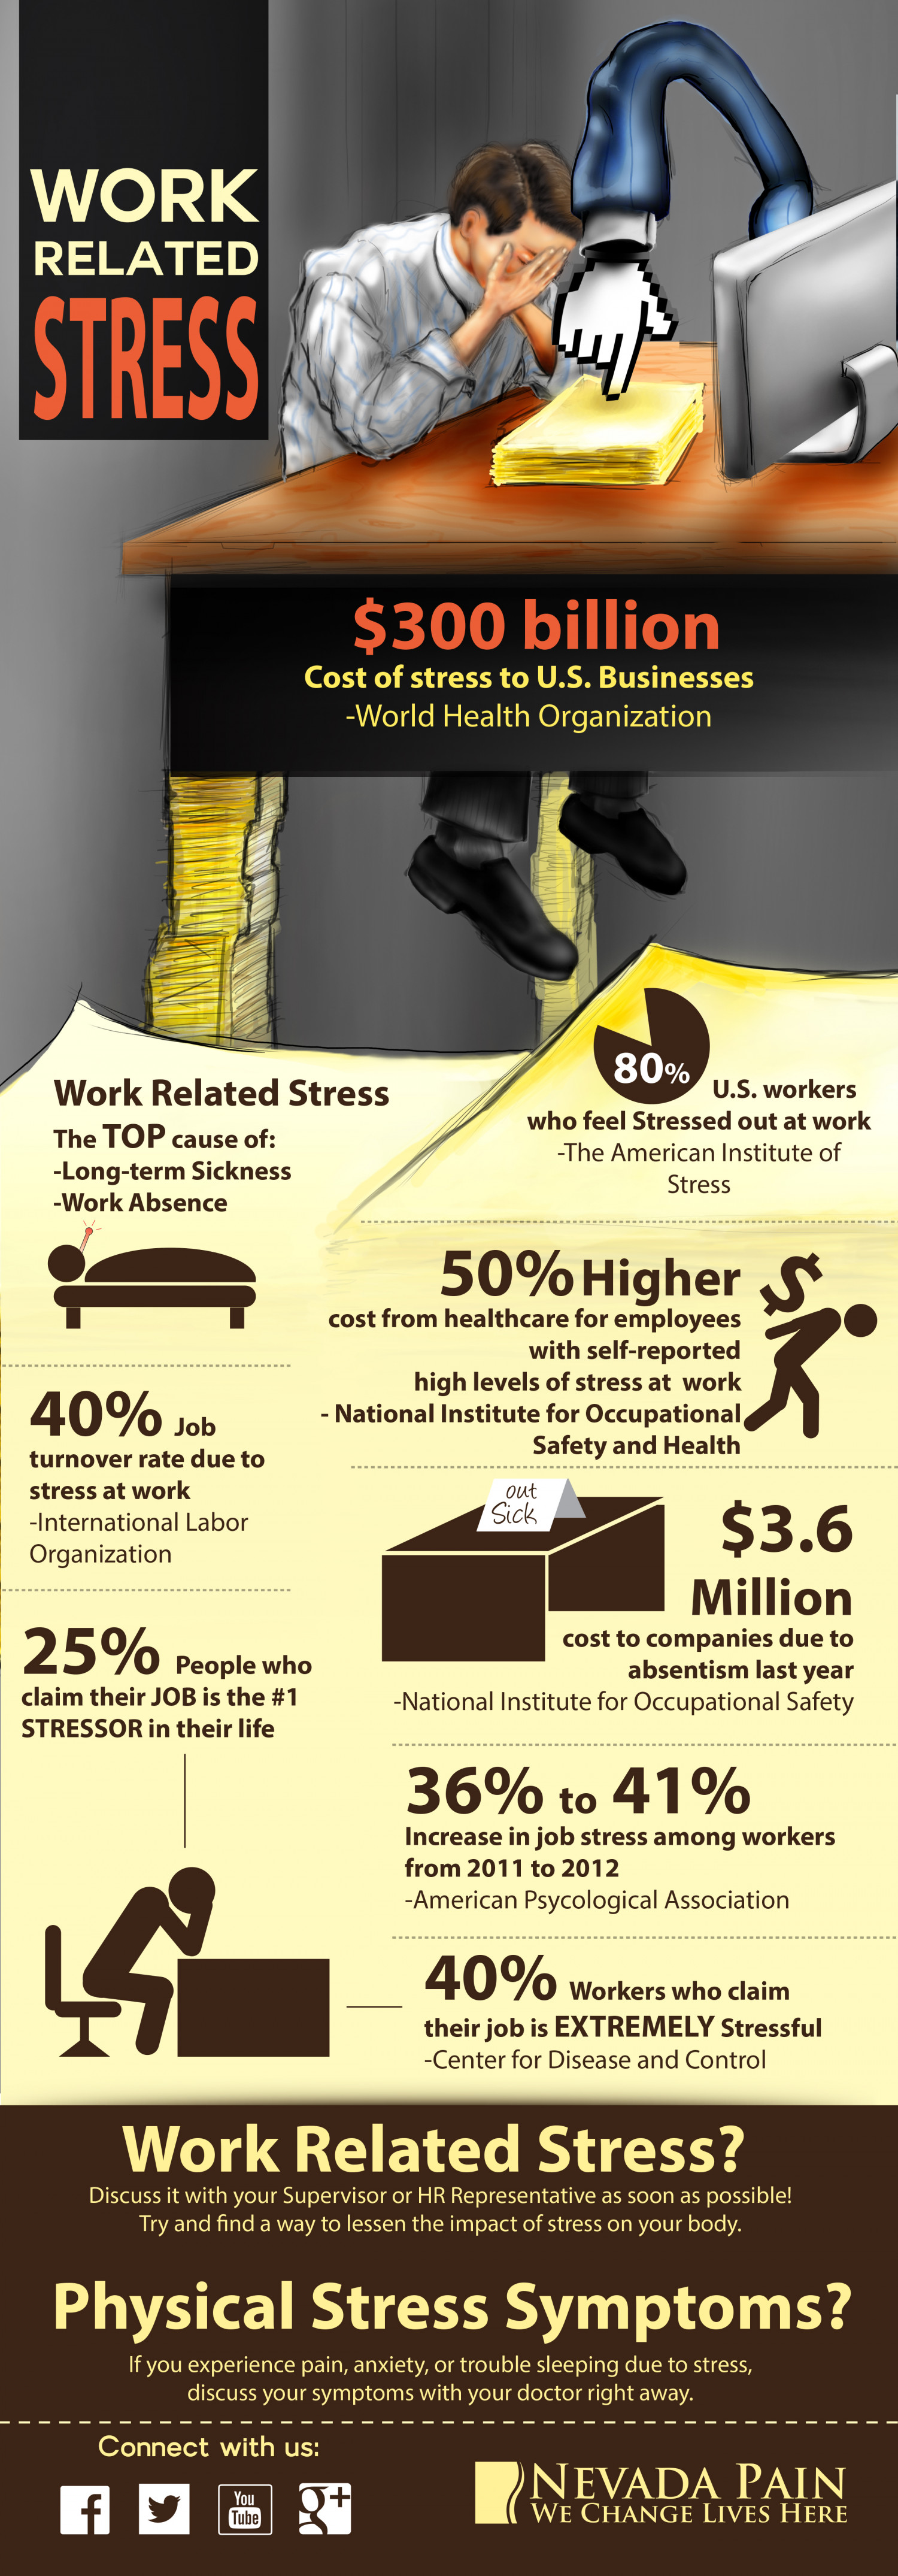 Work Related Stress Infographic